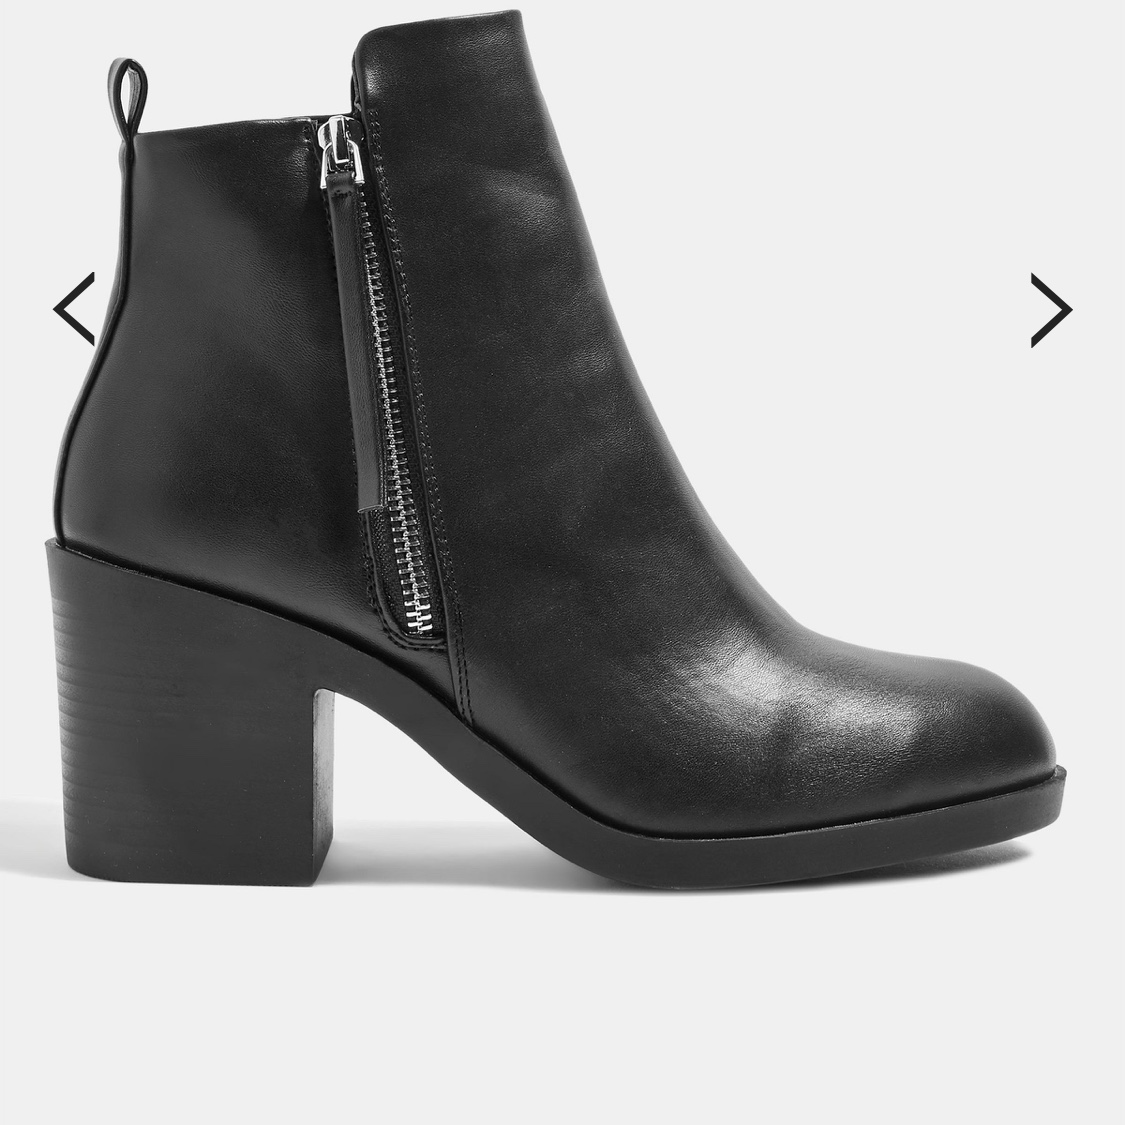 BRITTNEY Ankle Boots Topshop Size 41/7